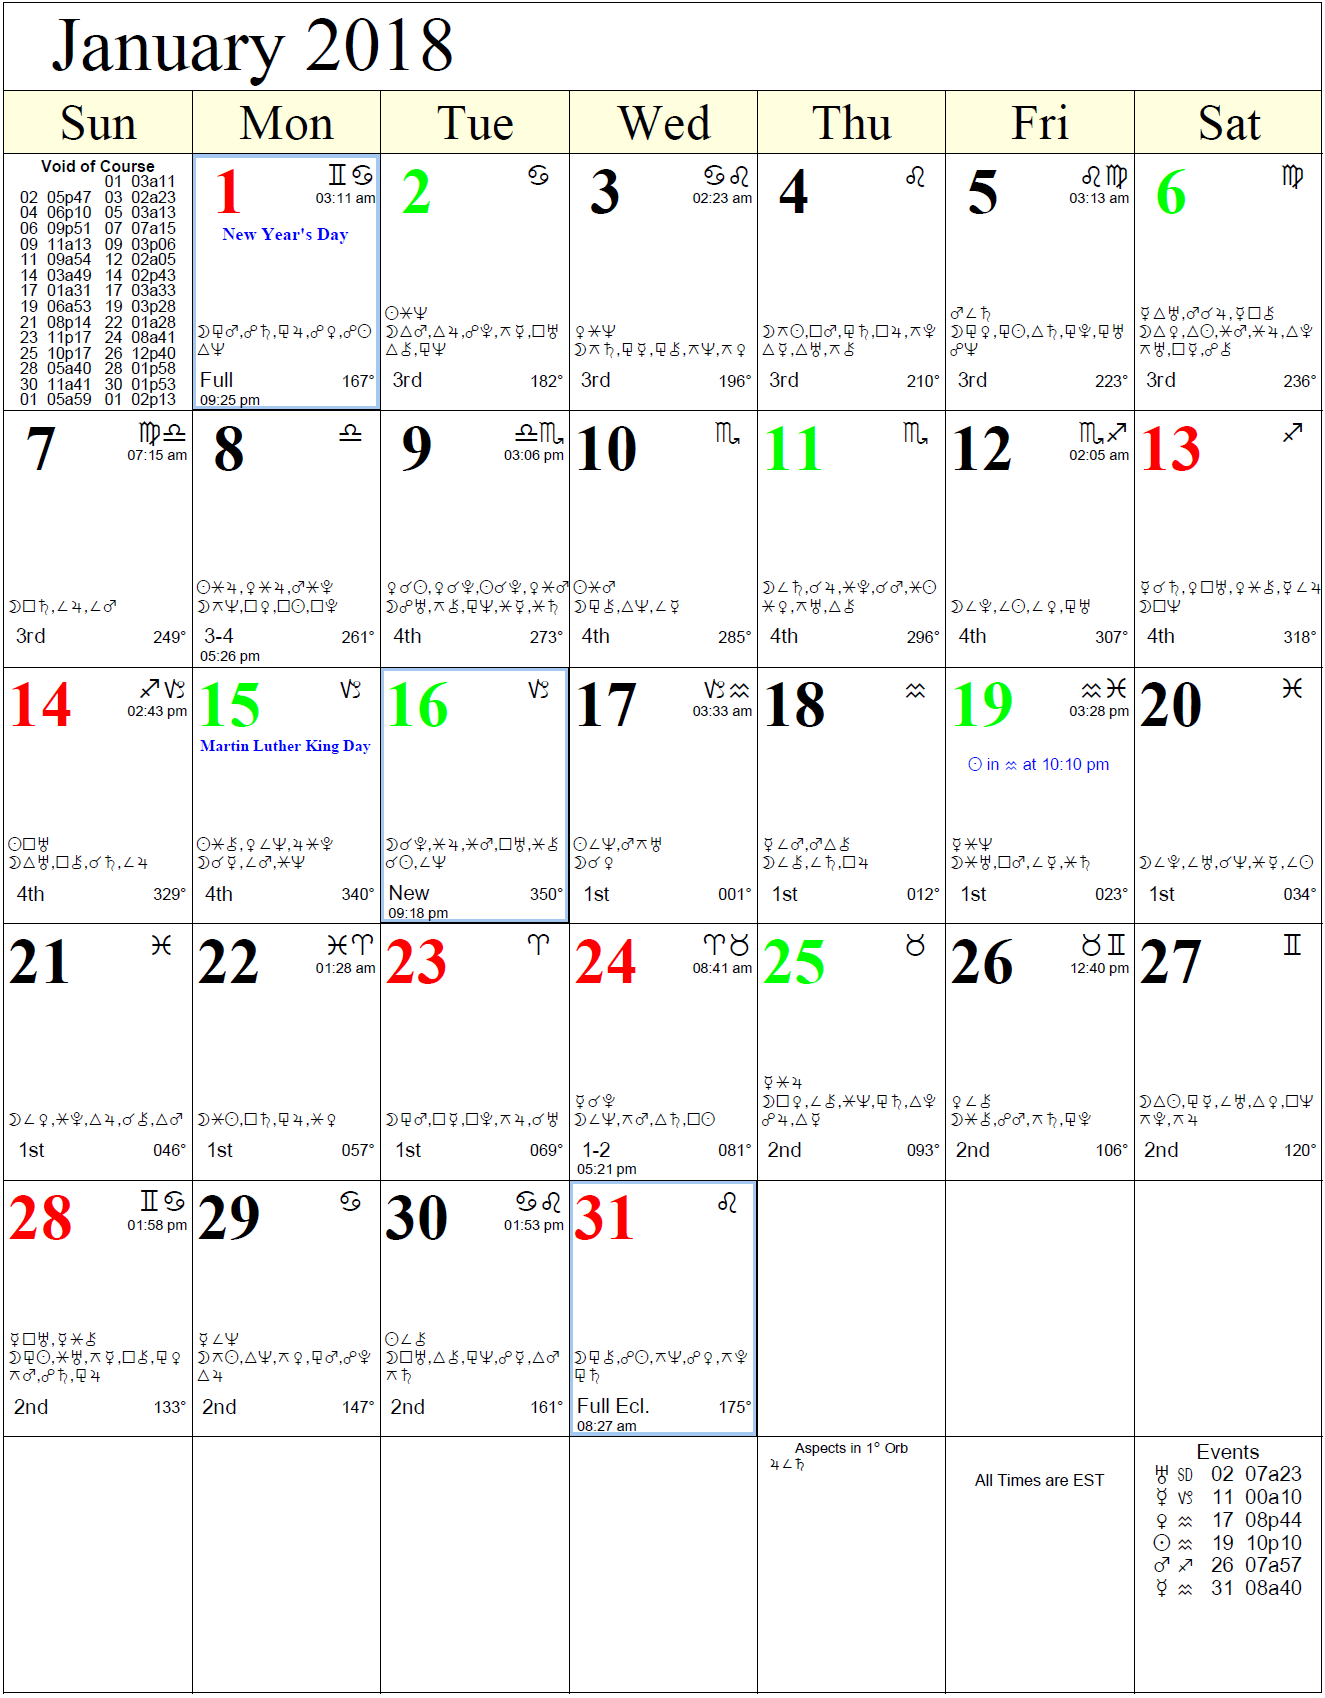 Monthly Astro Calendars | Cafe Astrology